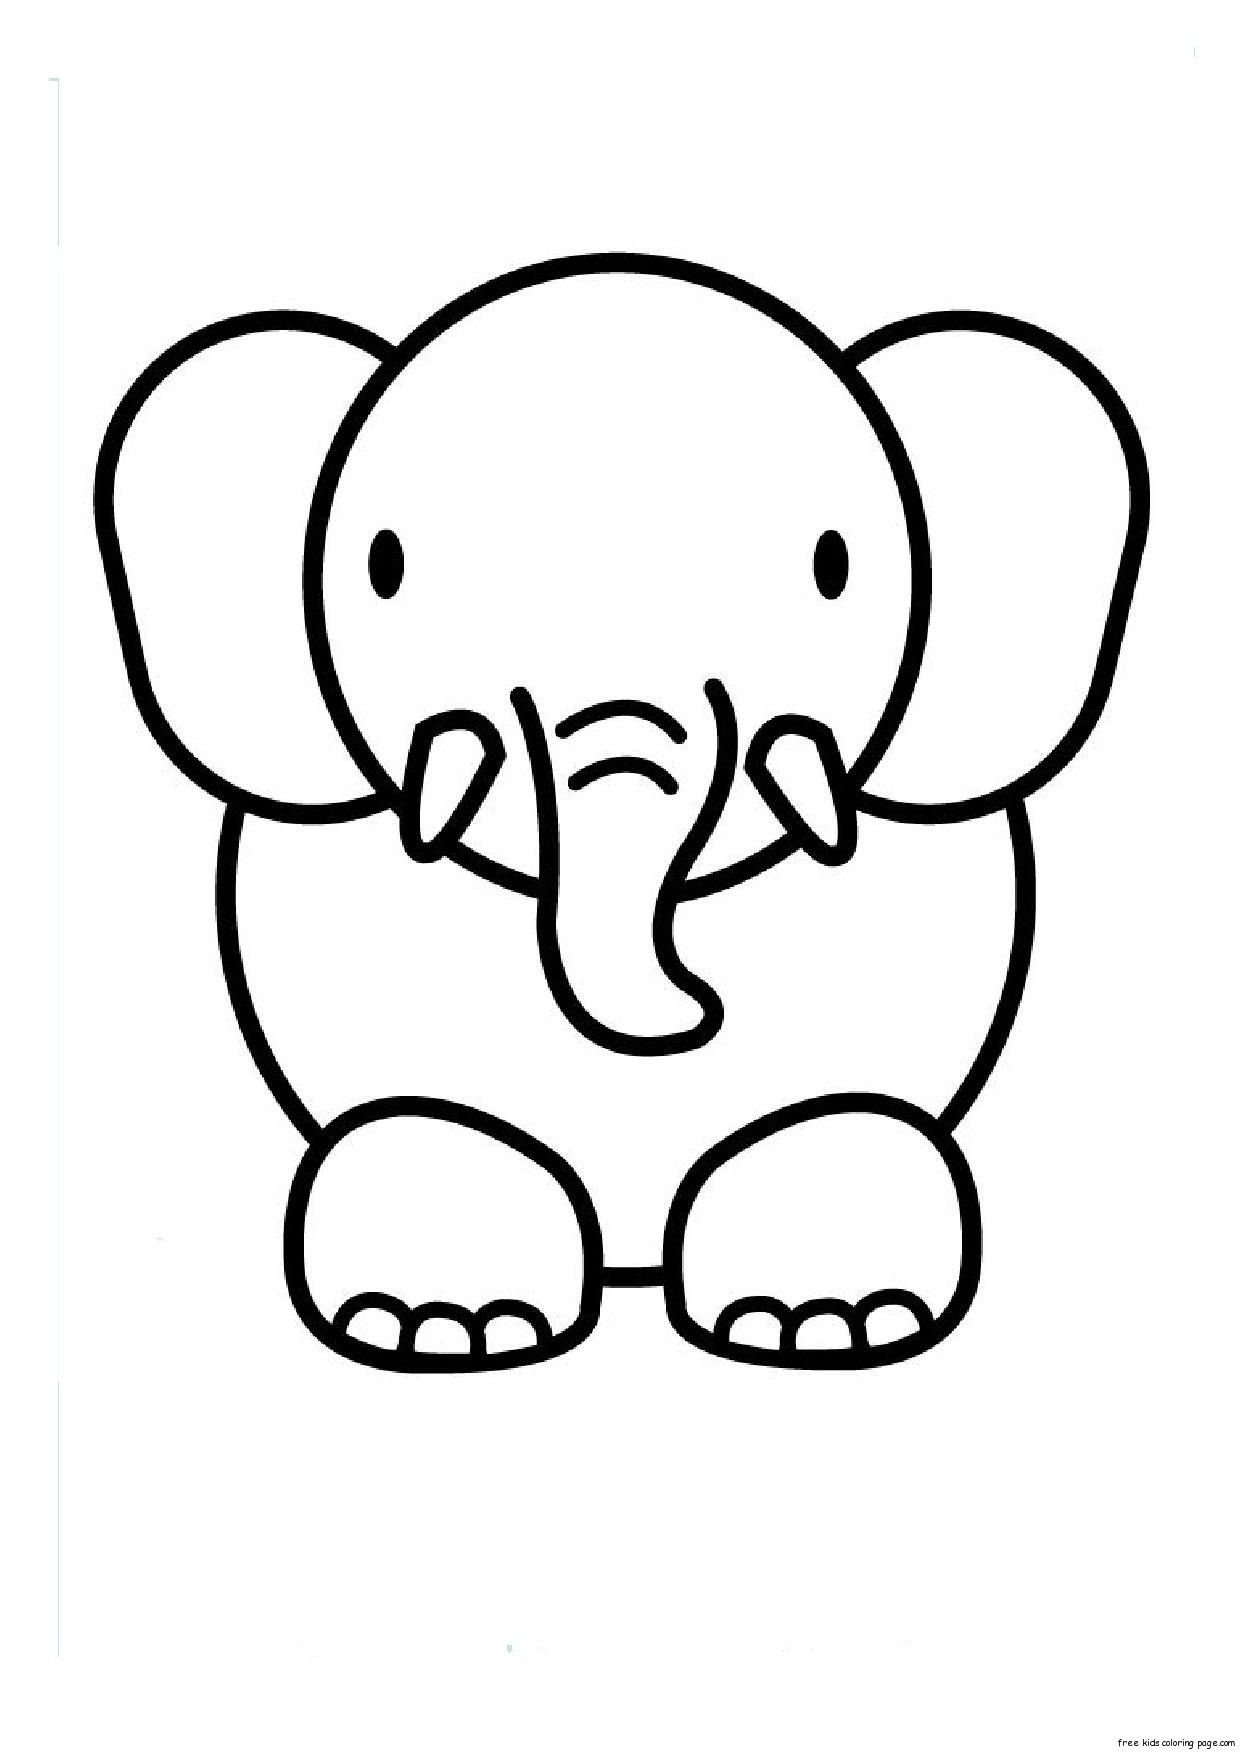 Awesome Simple Animal Coloring Pages 19 Print out animal elephant